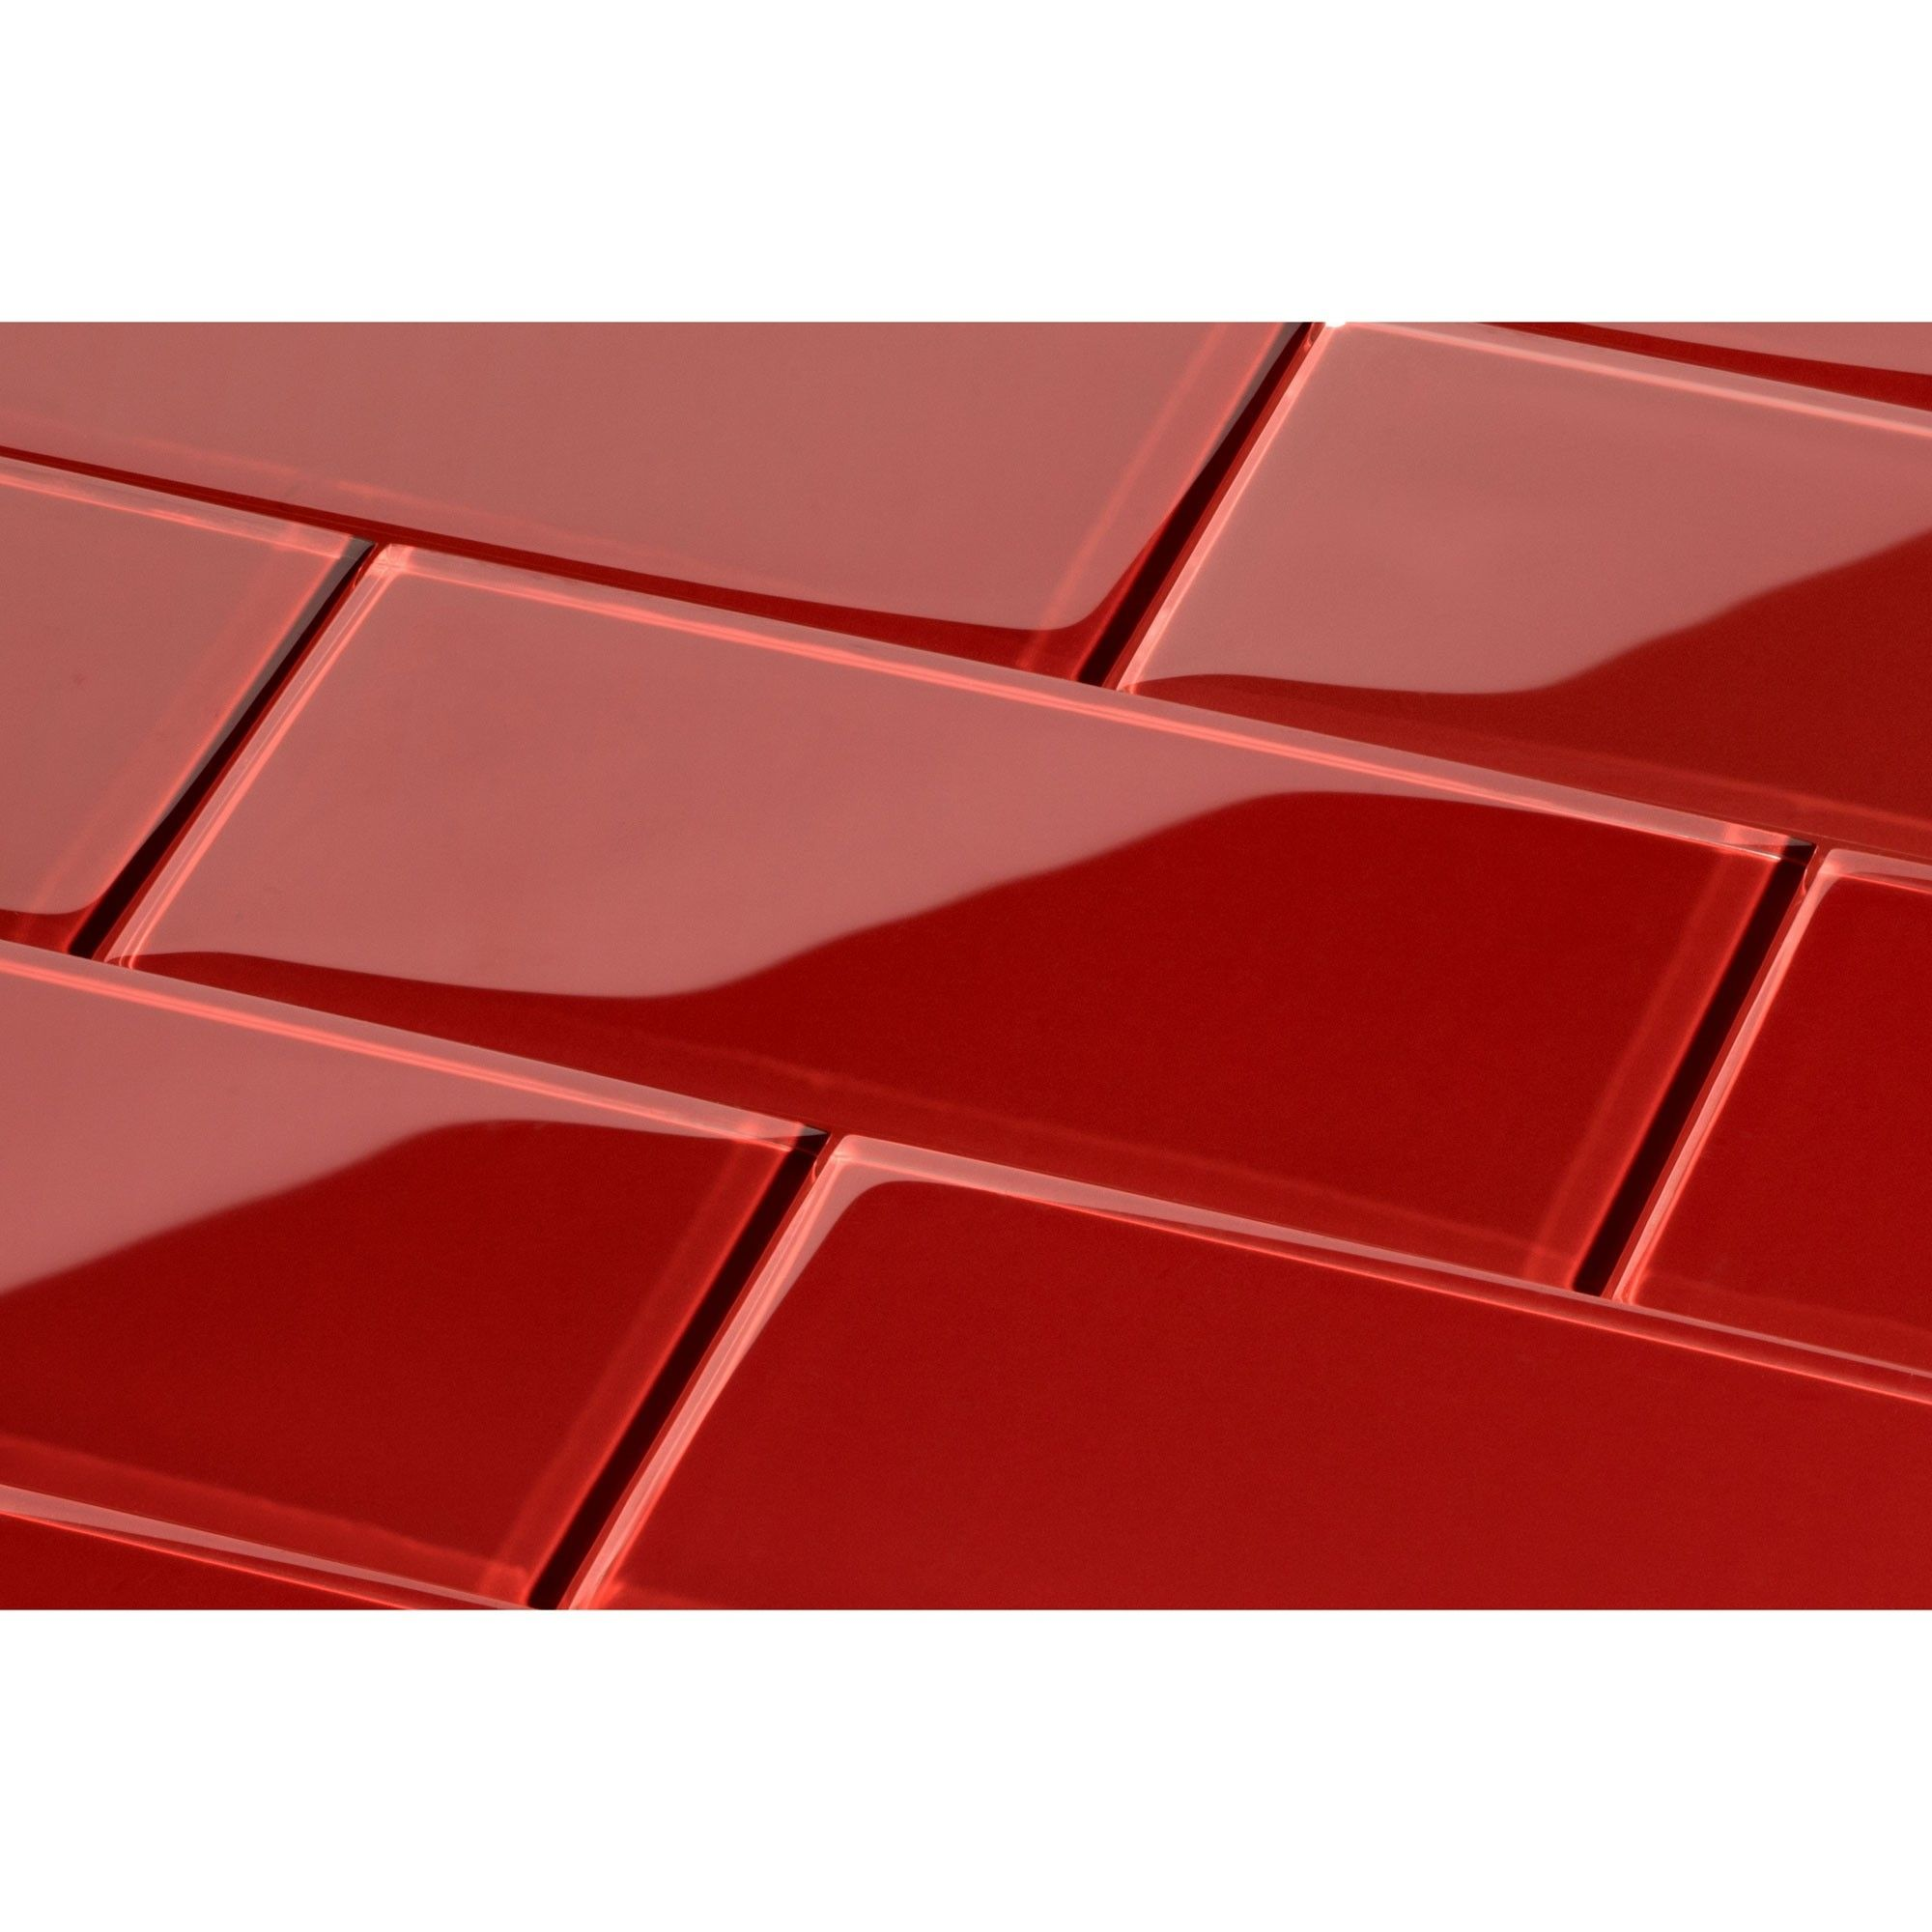 Red Glass Subway Tile Glossy 3 X 6 Glass Tile Glass Subway Tile Subway Tile Glass Subway Tile Backsplash